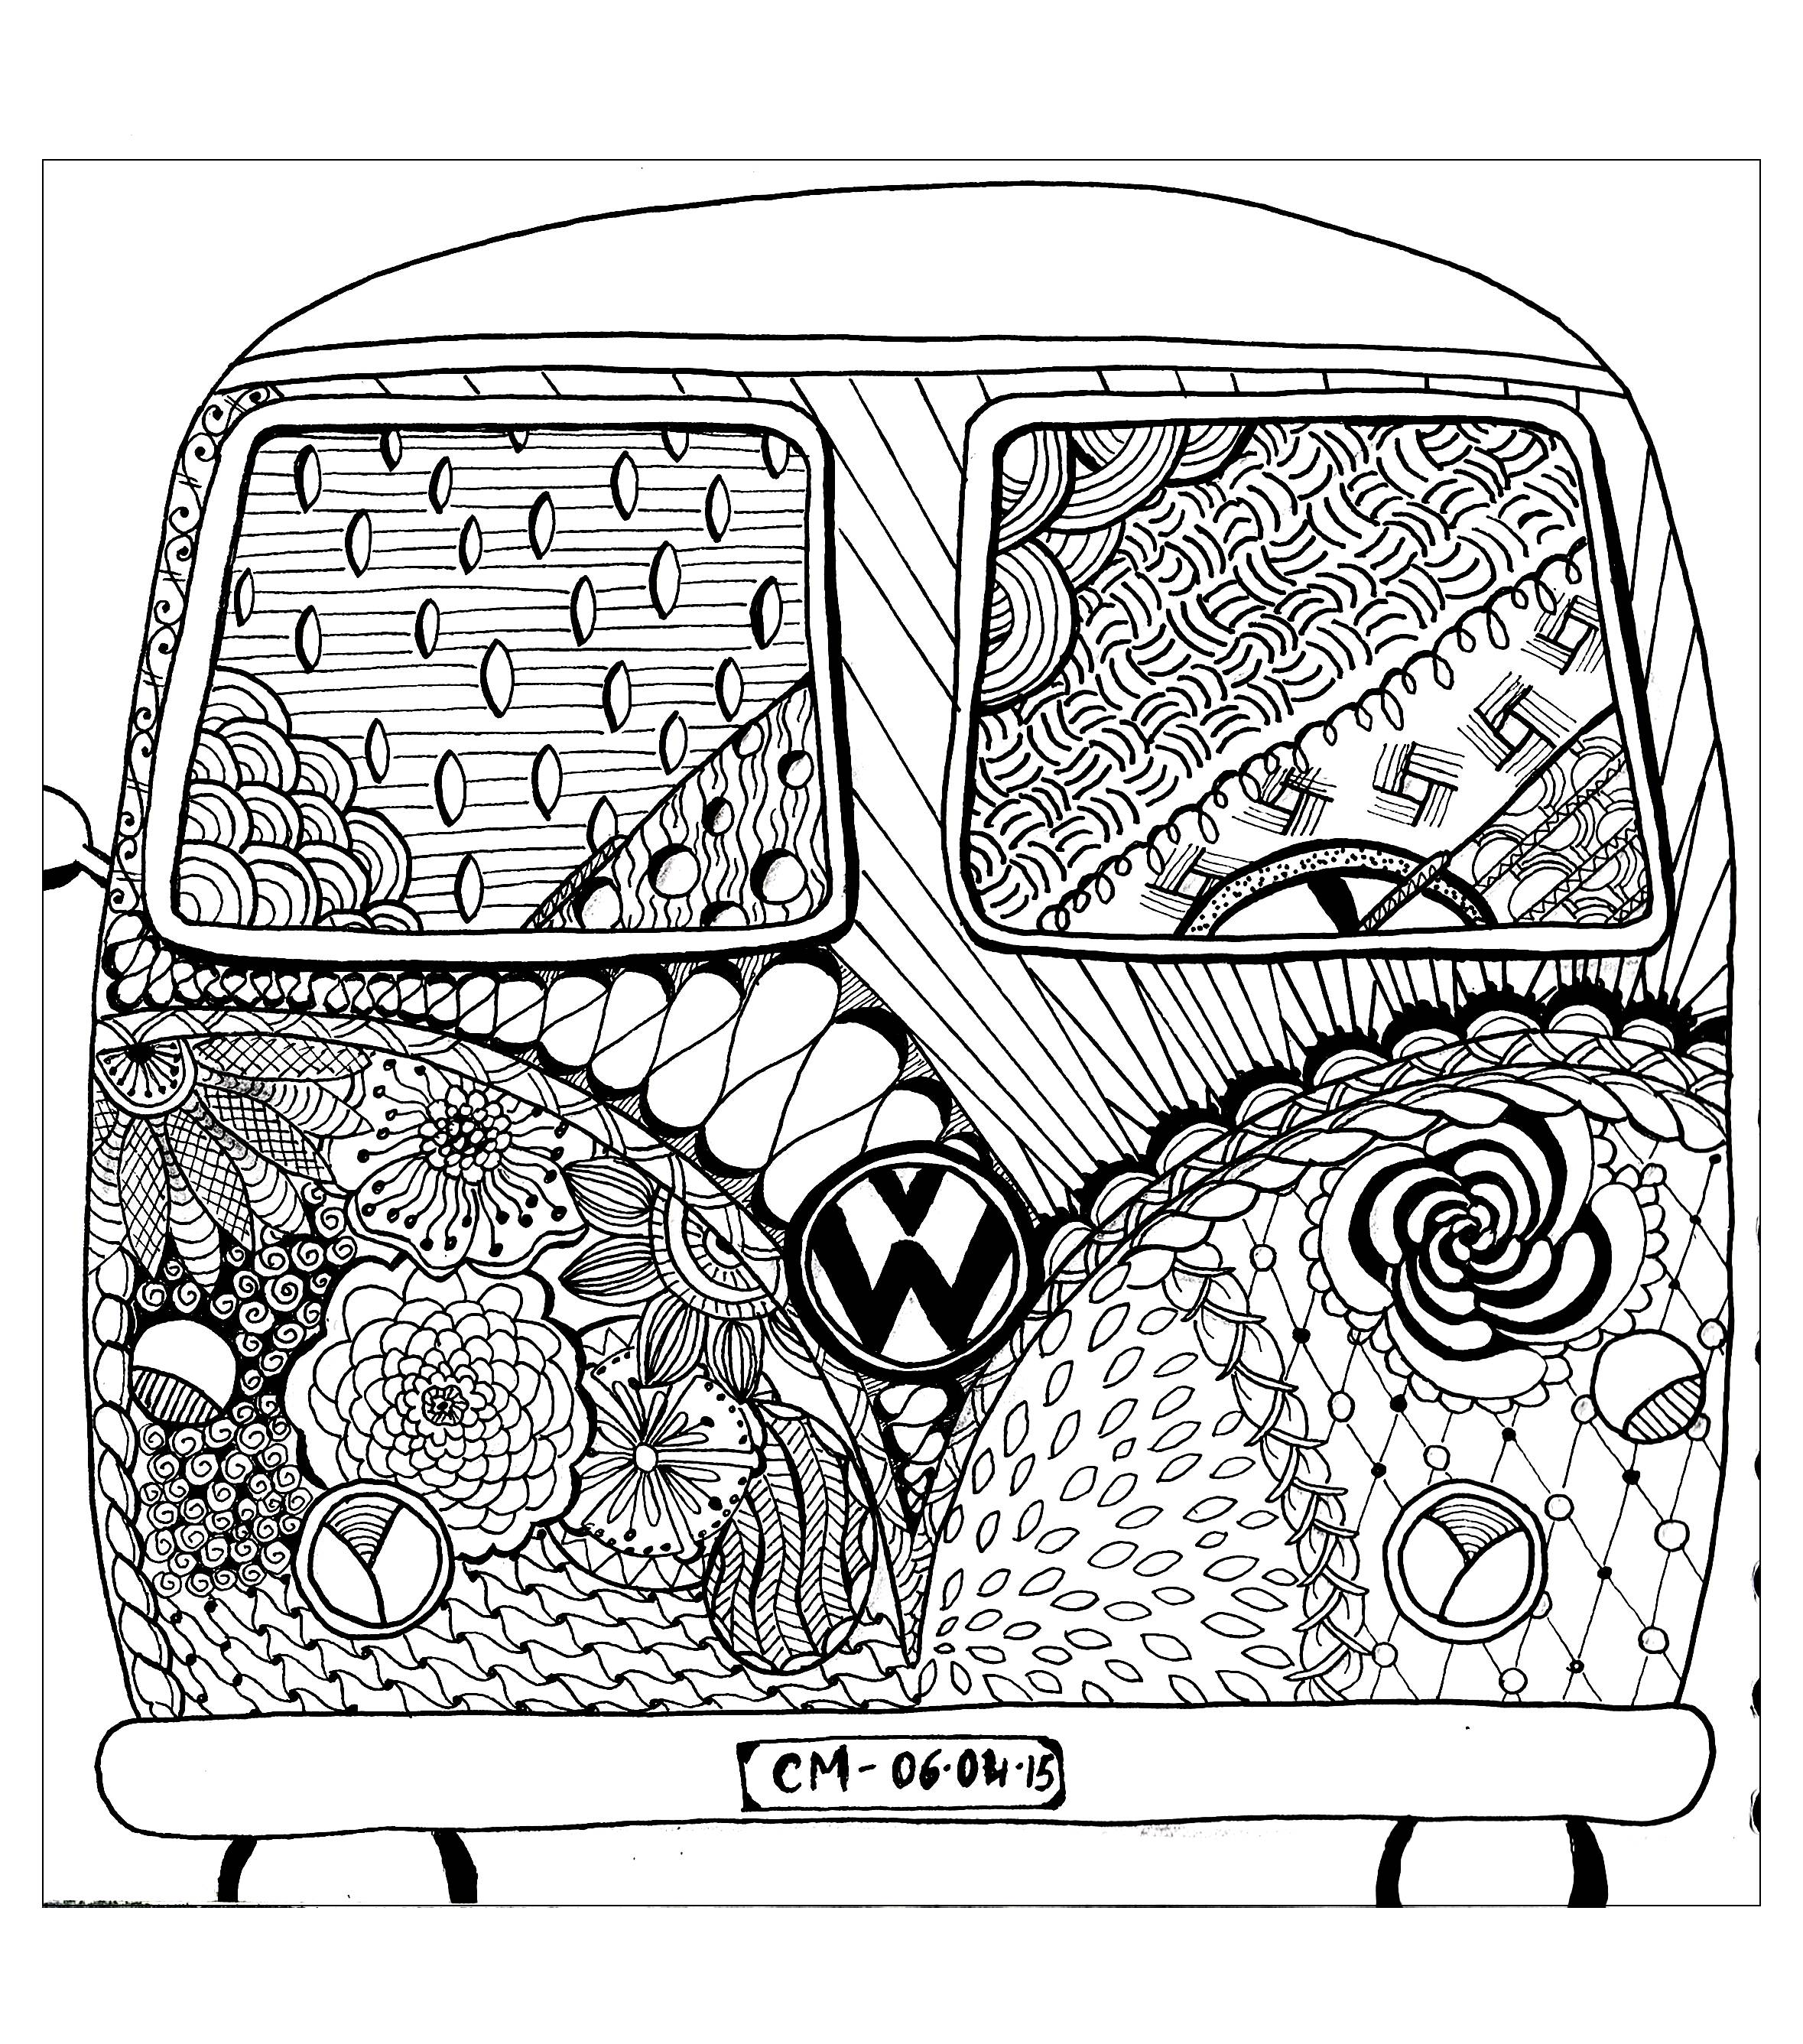 hippie van coloring pages | Top 5 Free Adult Coloring Page – We Are Teen Artists